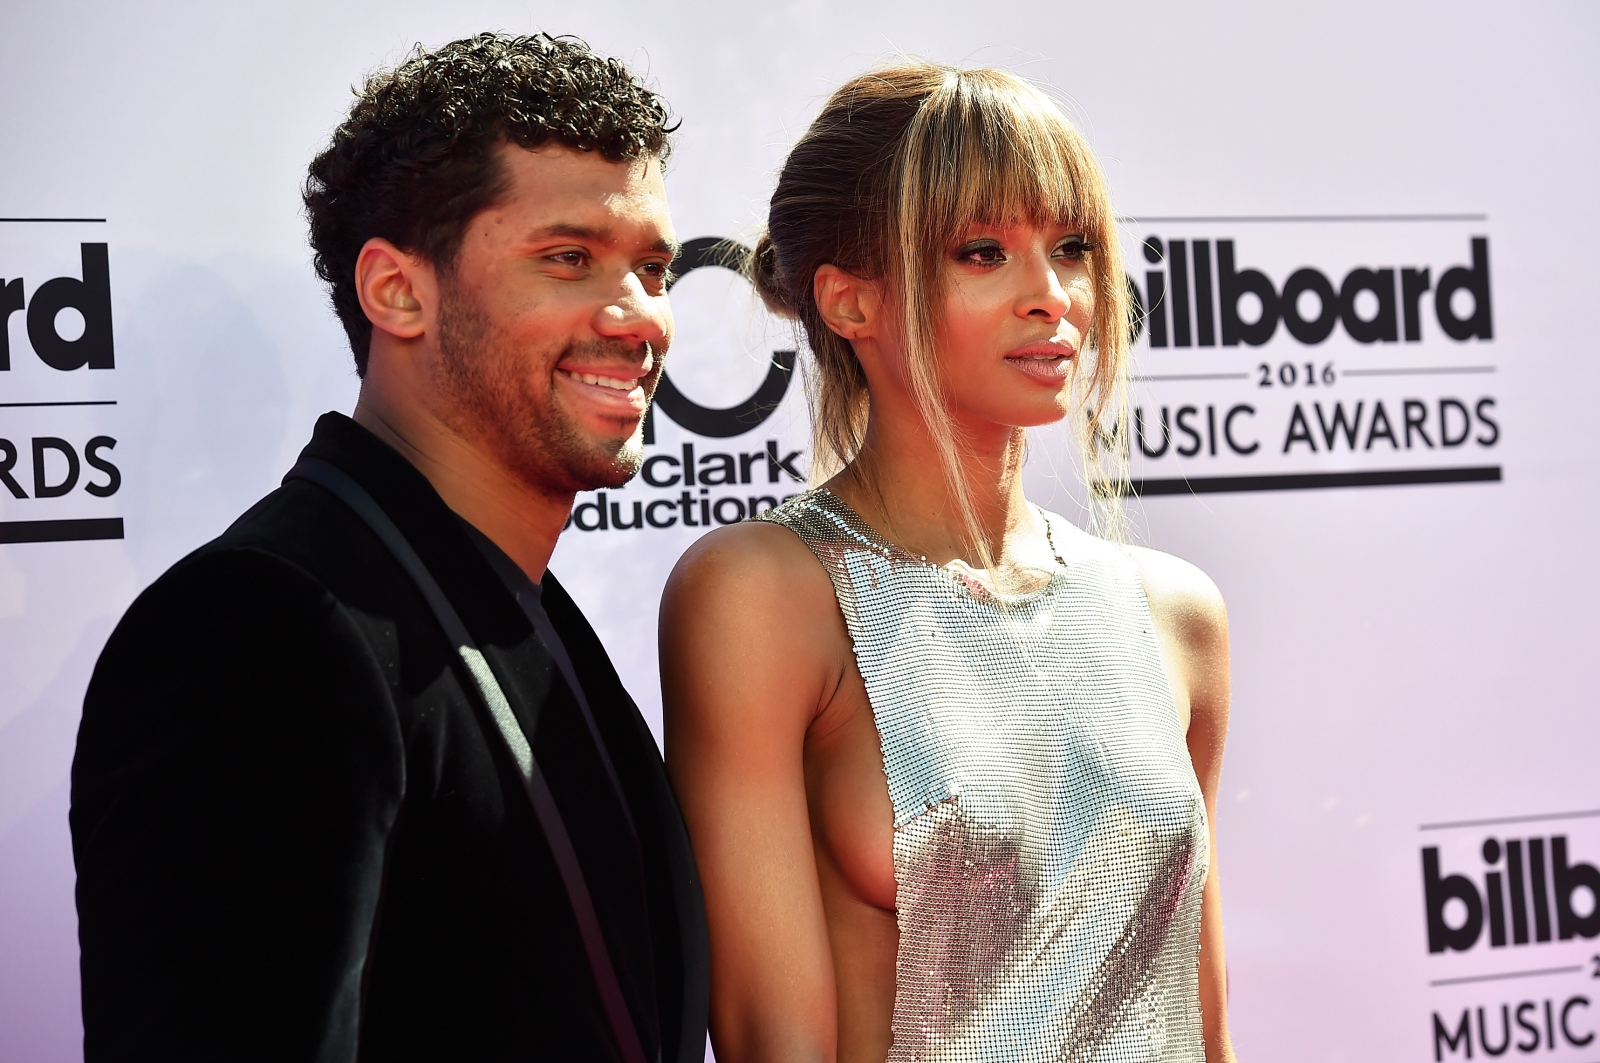 Russell Wilson: The best part was watching her walk down the aisle